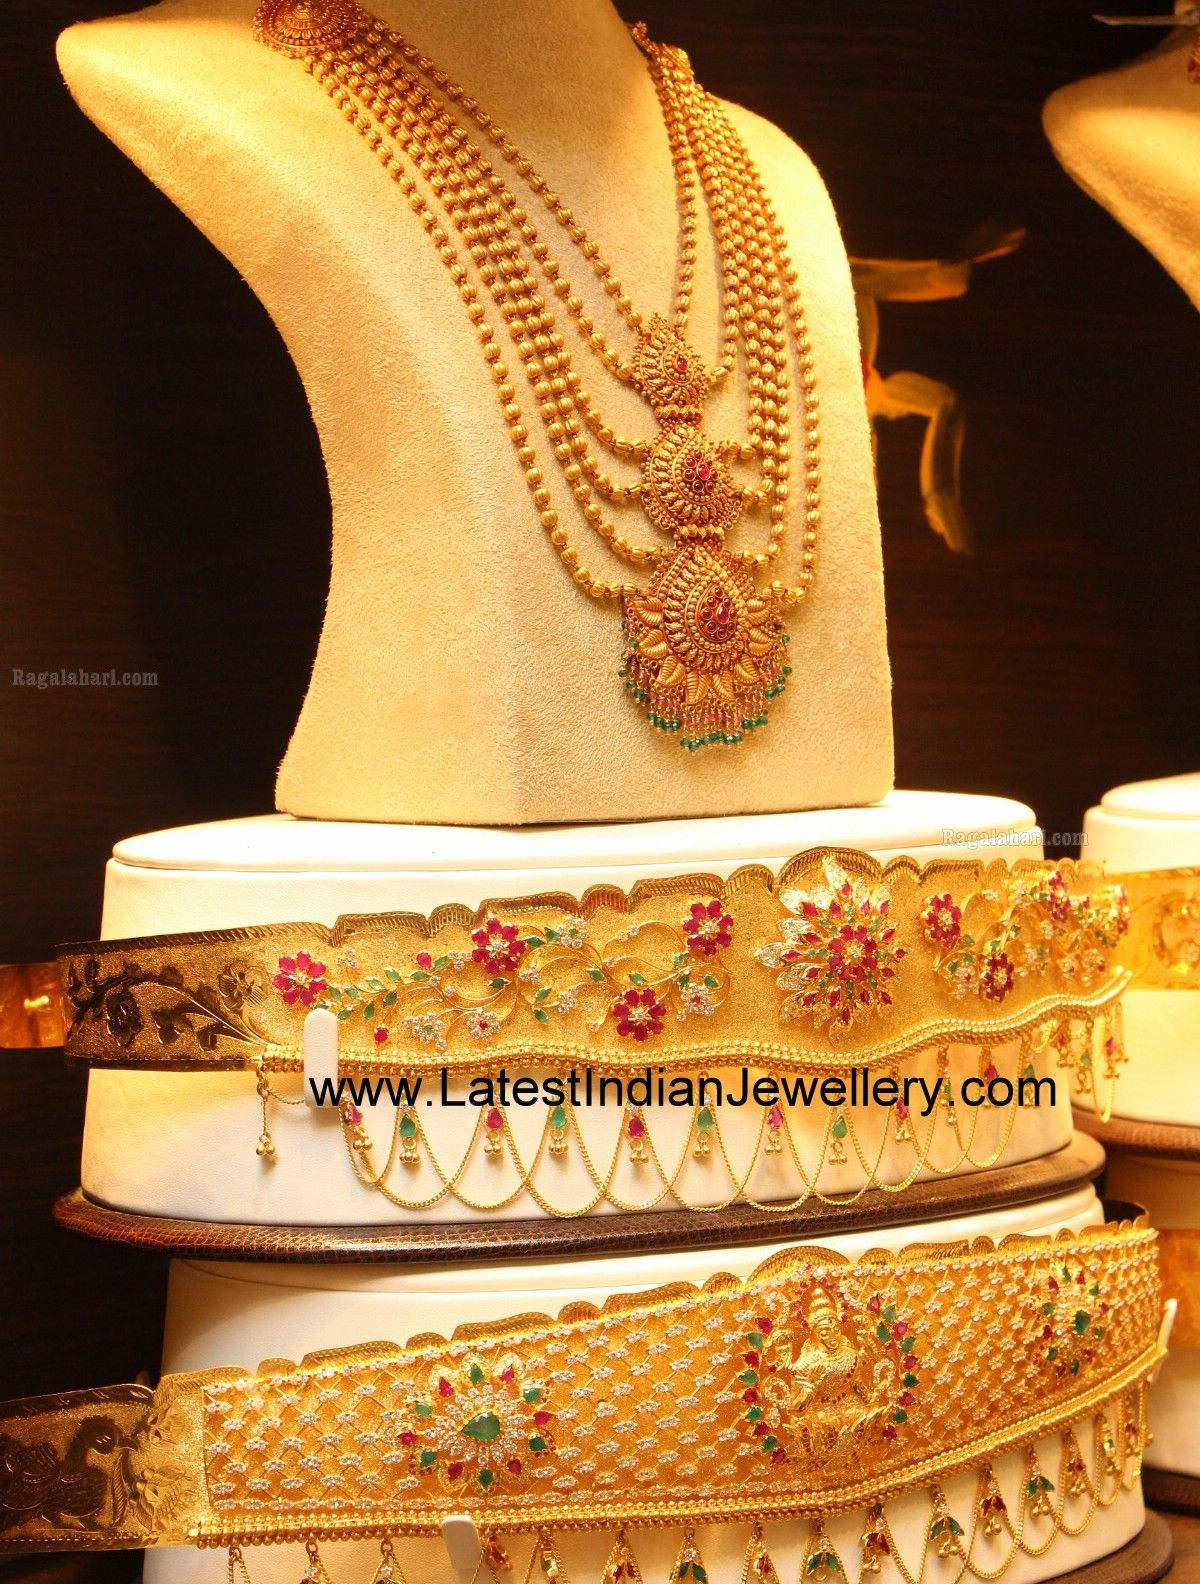 Gold vaddanam oddiyanam kammarpatta waisbelt designs south indian - Bridal Step Haram And Vaddanam Gold Jewelleryindian